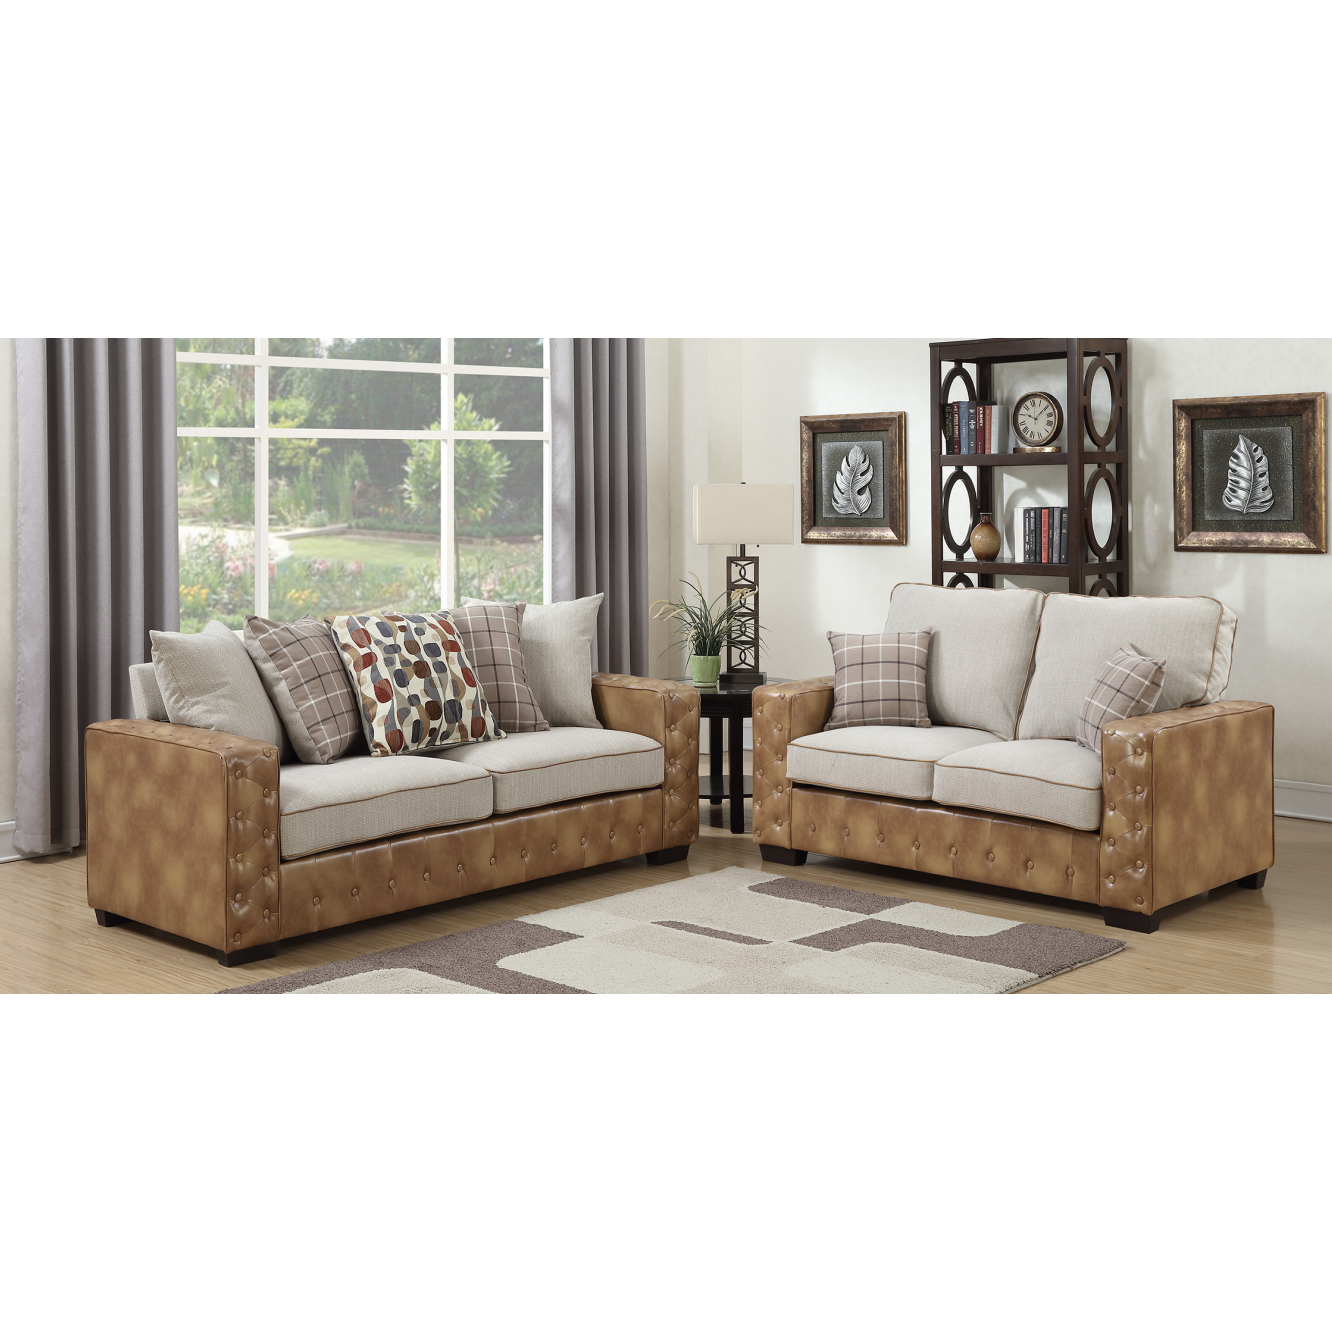 Wood Frame Navy Furniture Couch